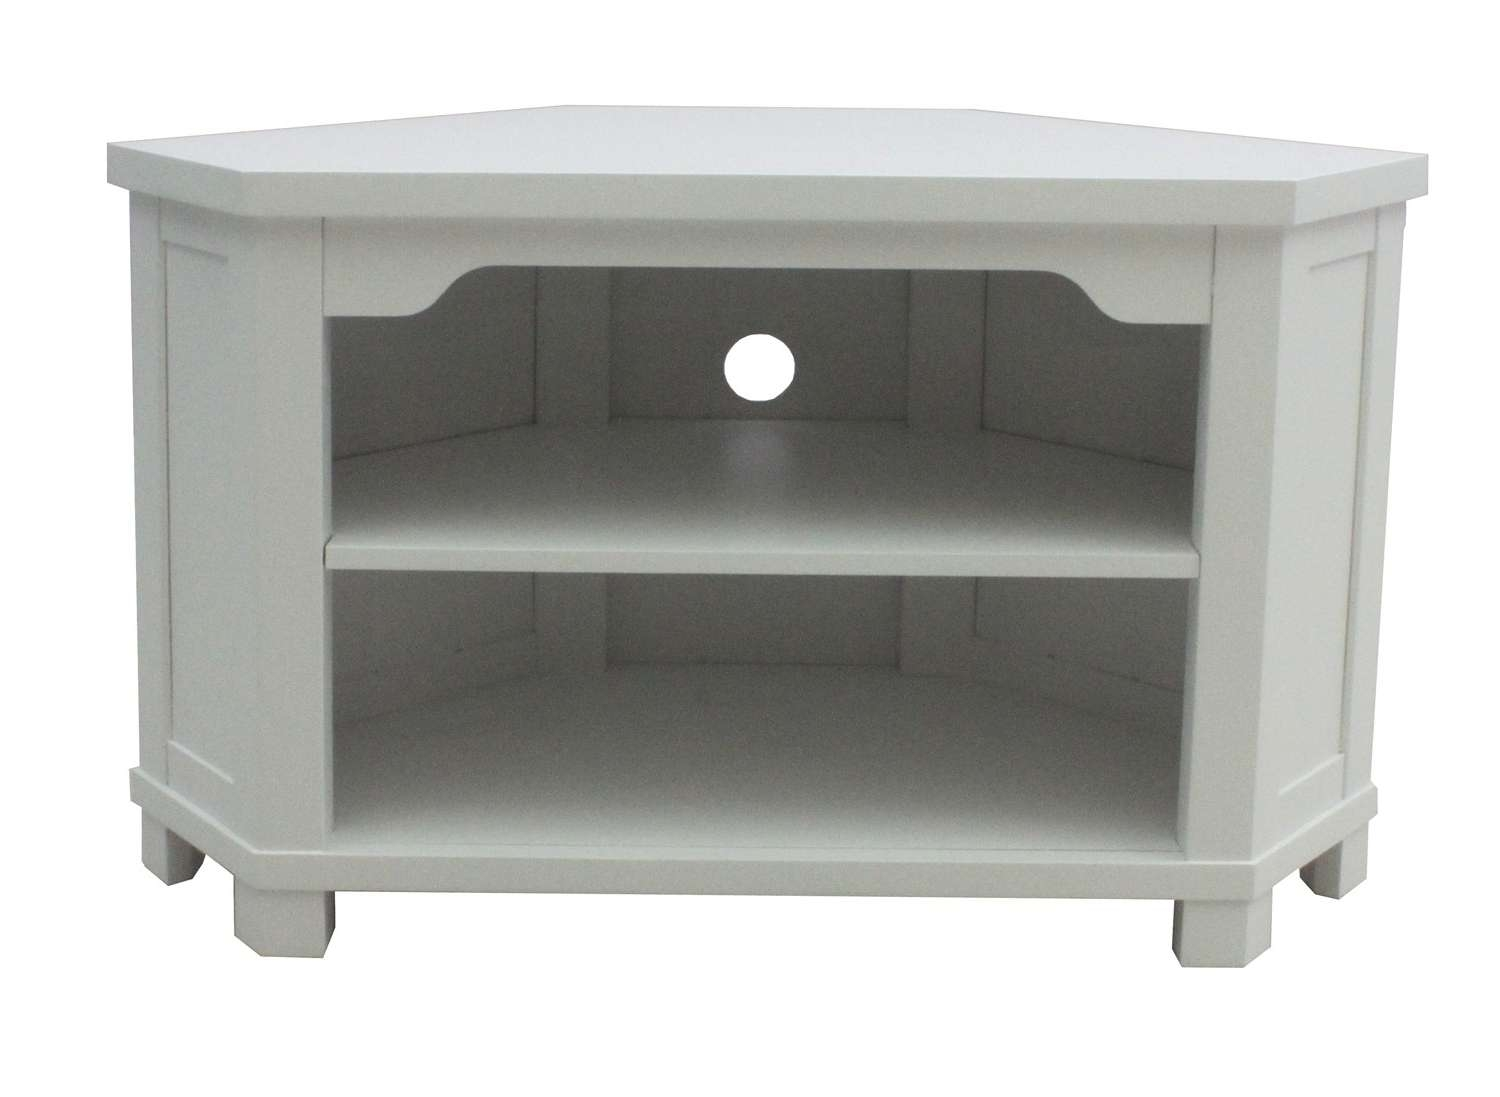 Small White Corner Tv Stand Stands Tall Standor Bedroom Trends Throughout Small White Tv Cabinets (View 17 of 20)